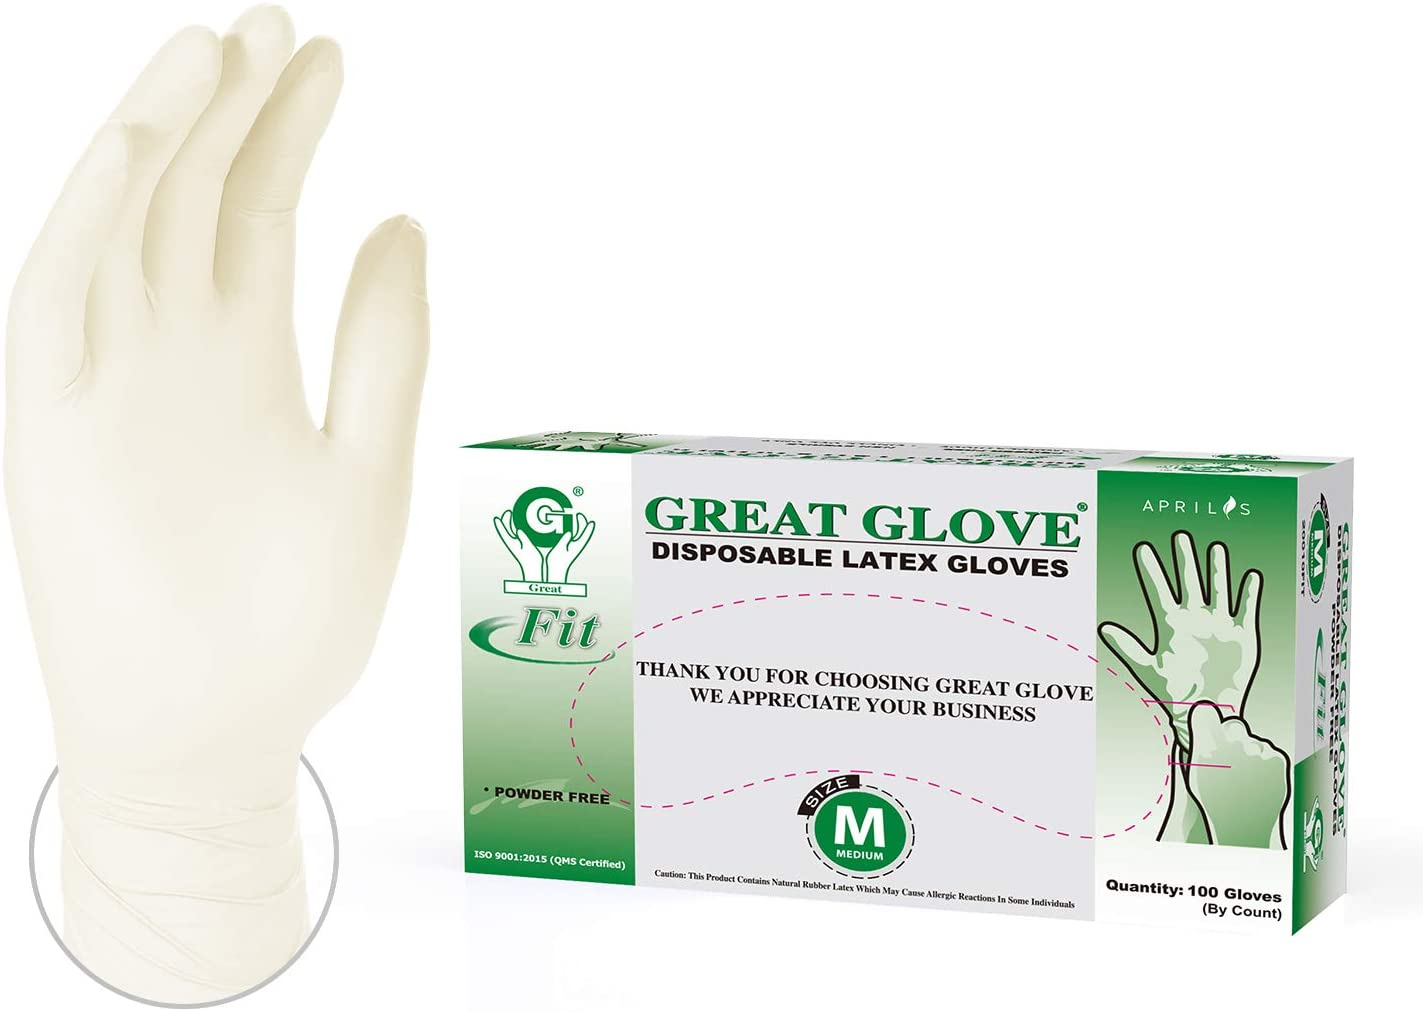 Aprilis Disposable Latex Gloves Pack of 100, Powder Free Protective Glove for Kitchen Cooking Cleaning, White (Medium)